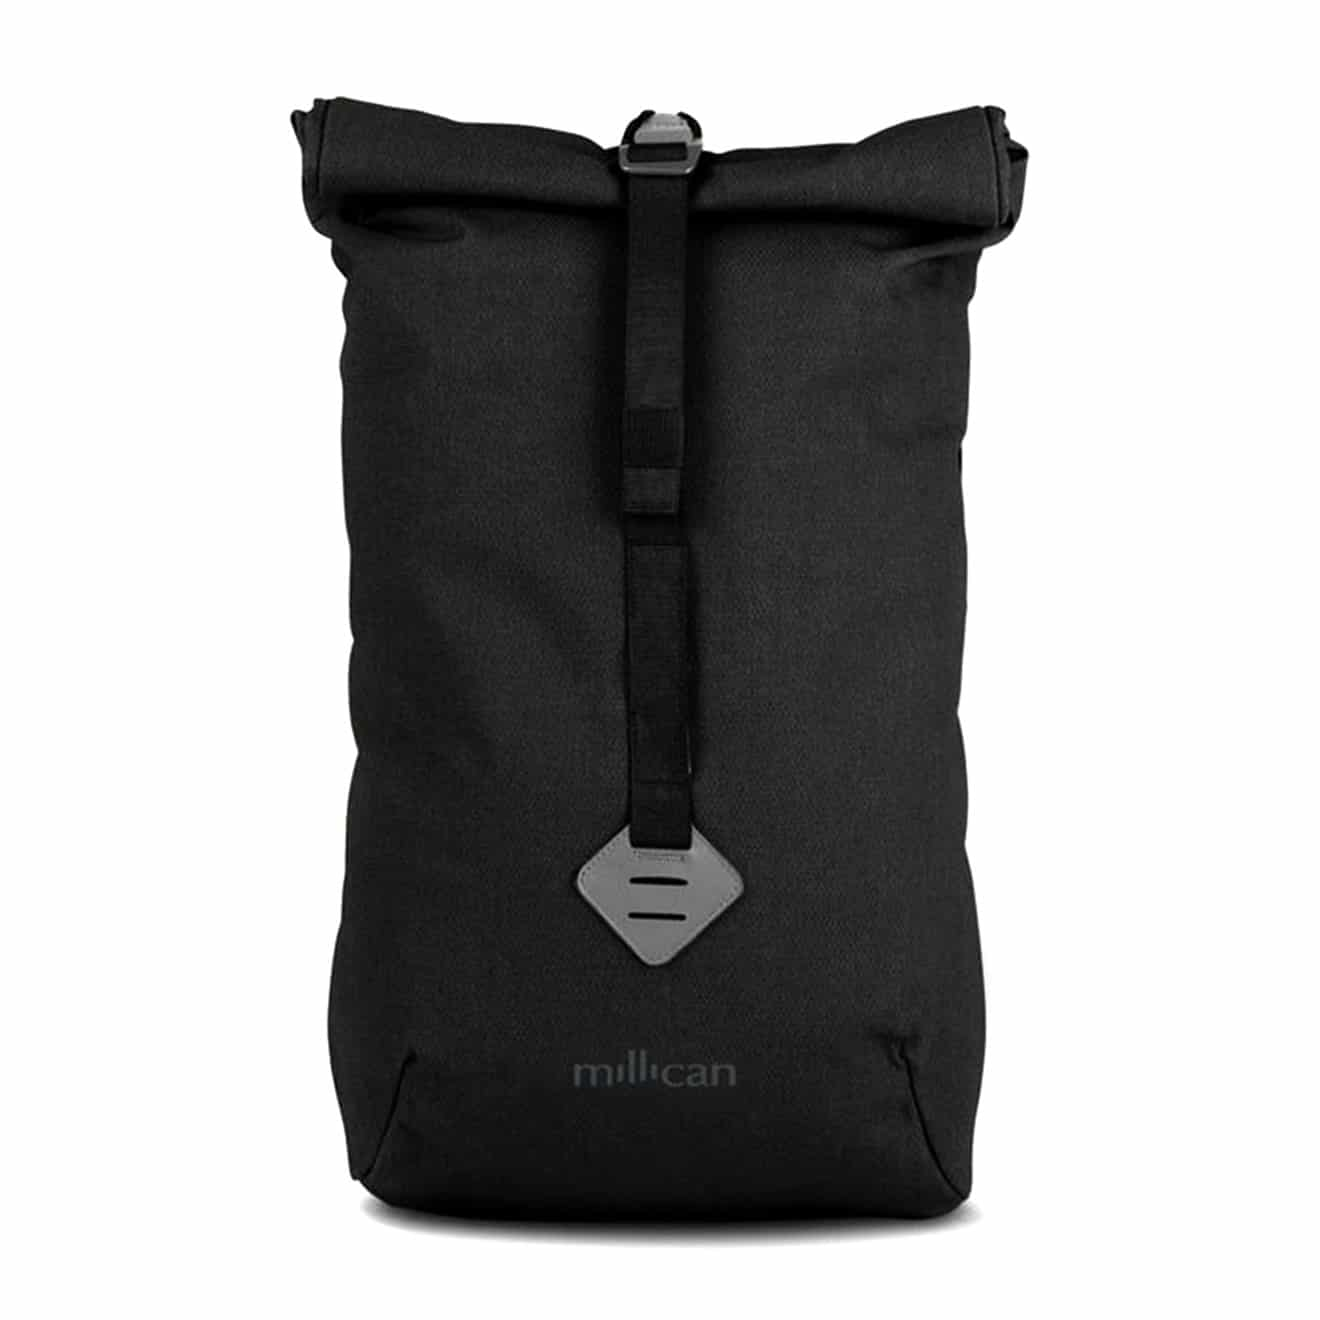 Millican Smith The Roll Pack 15L